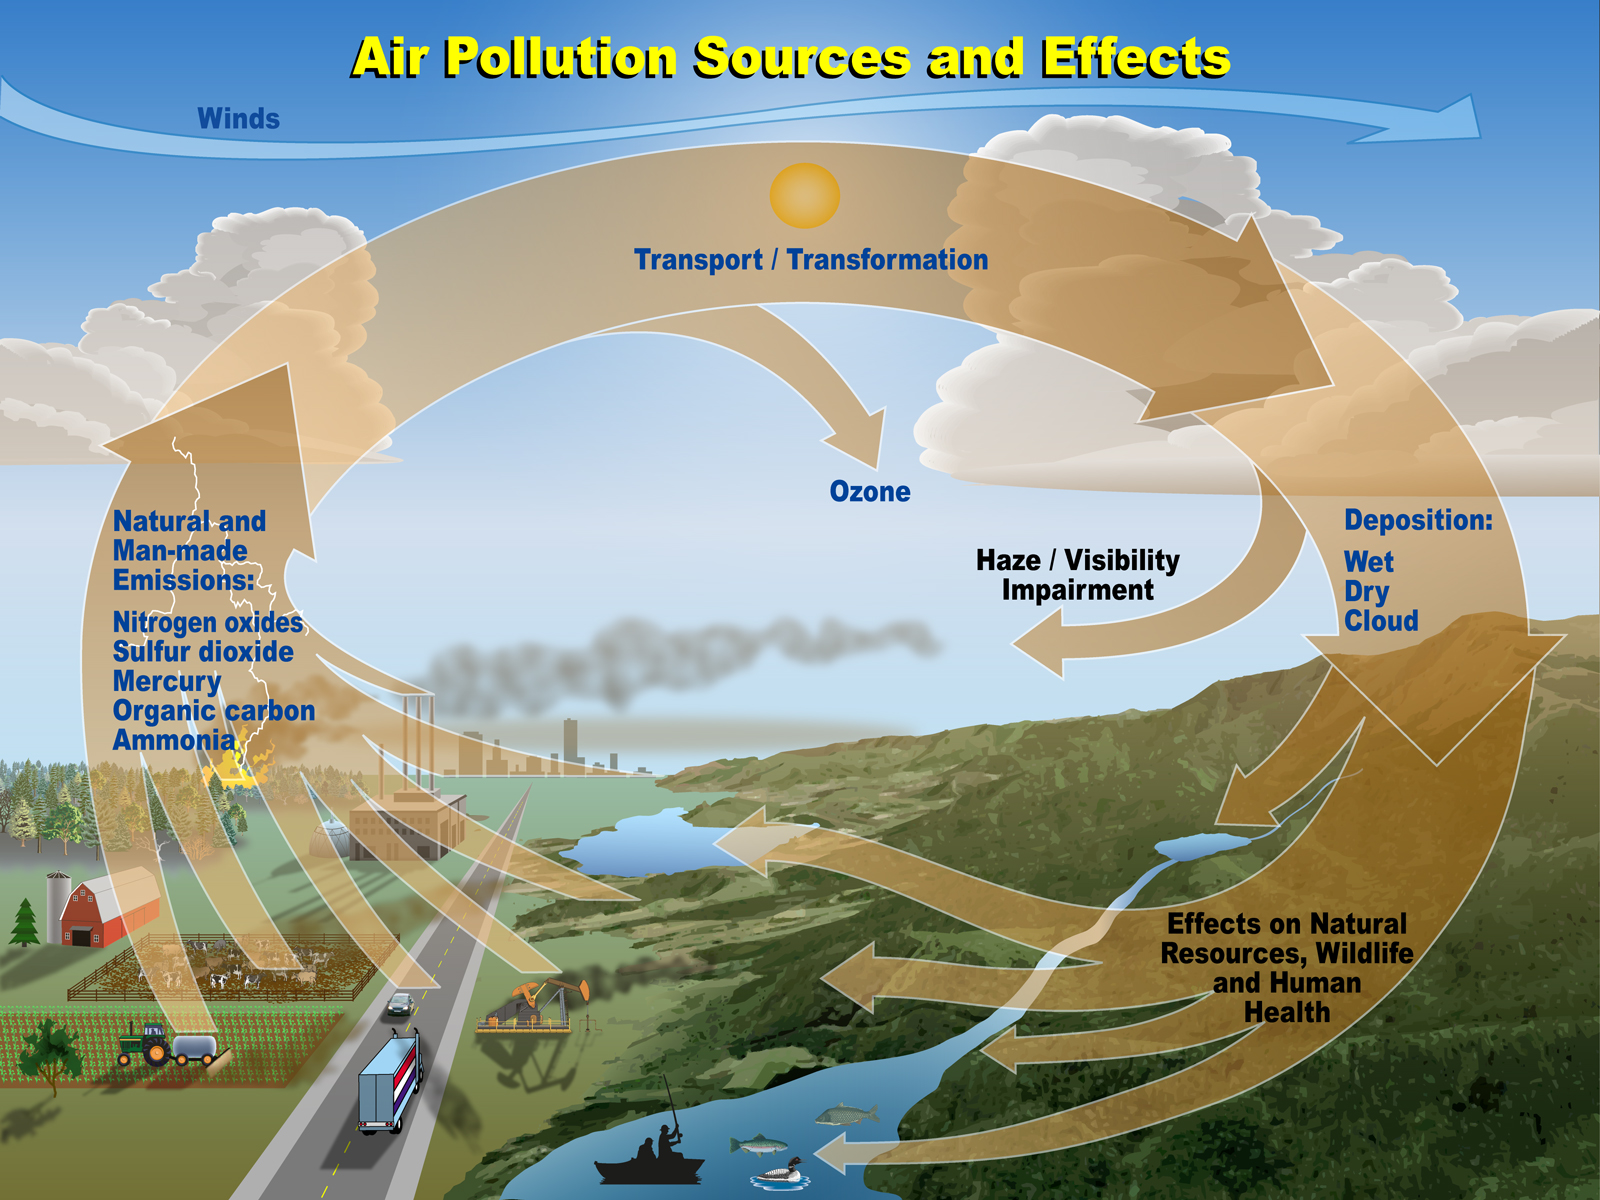 the devastating effects of chemical pollution on the environment The control of chemical pollutants and their effects requires not only more   environmental pollution, especially by chemicals, is one of the most potent  factors in the  normal agricultural practices may avoid the destructive effects of  the.